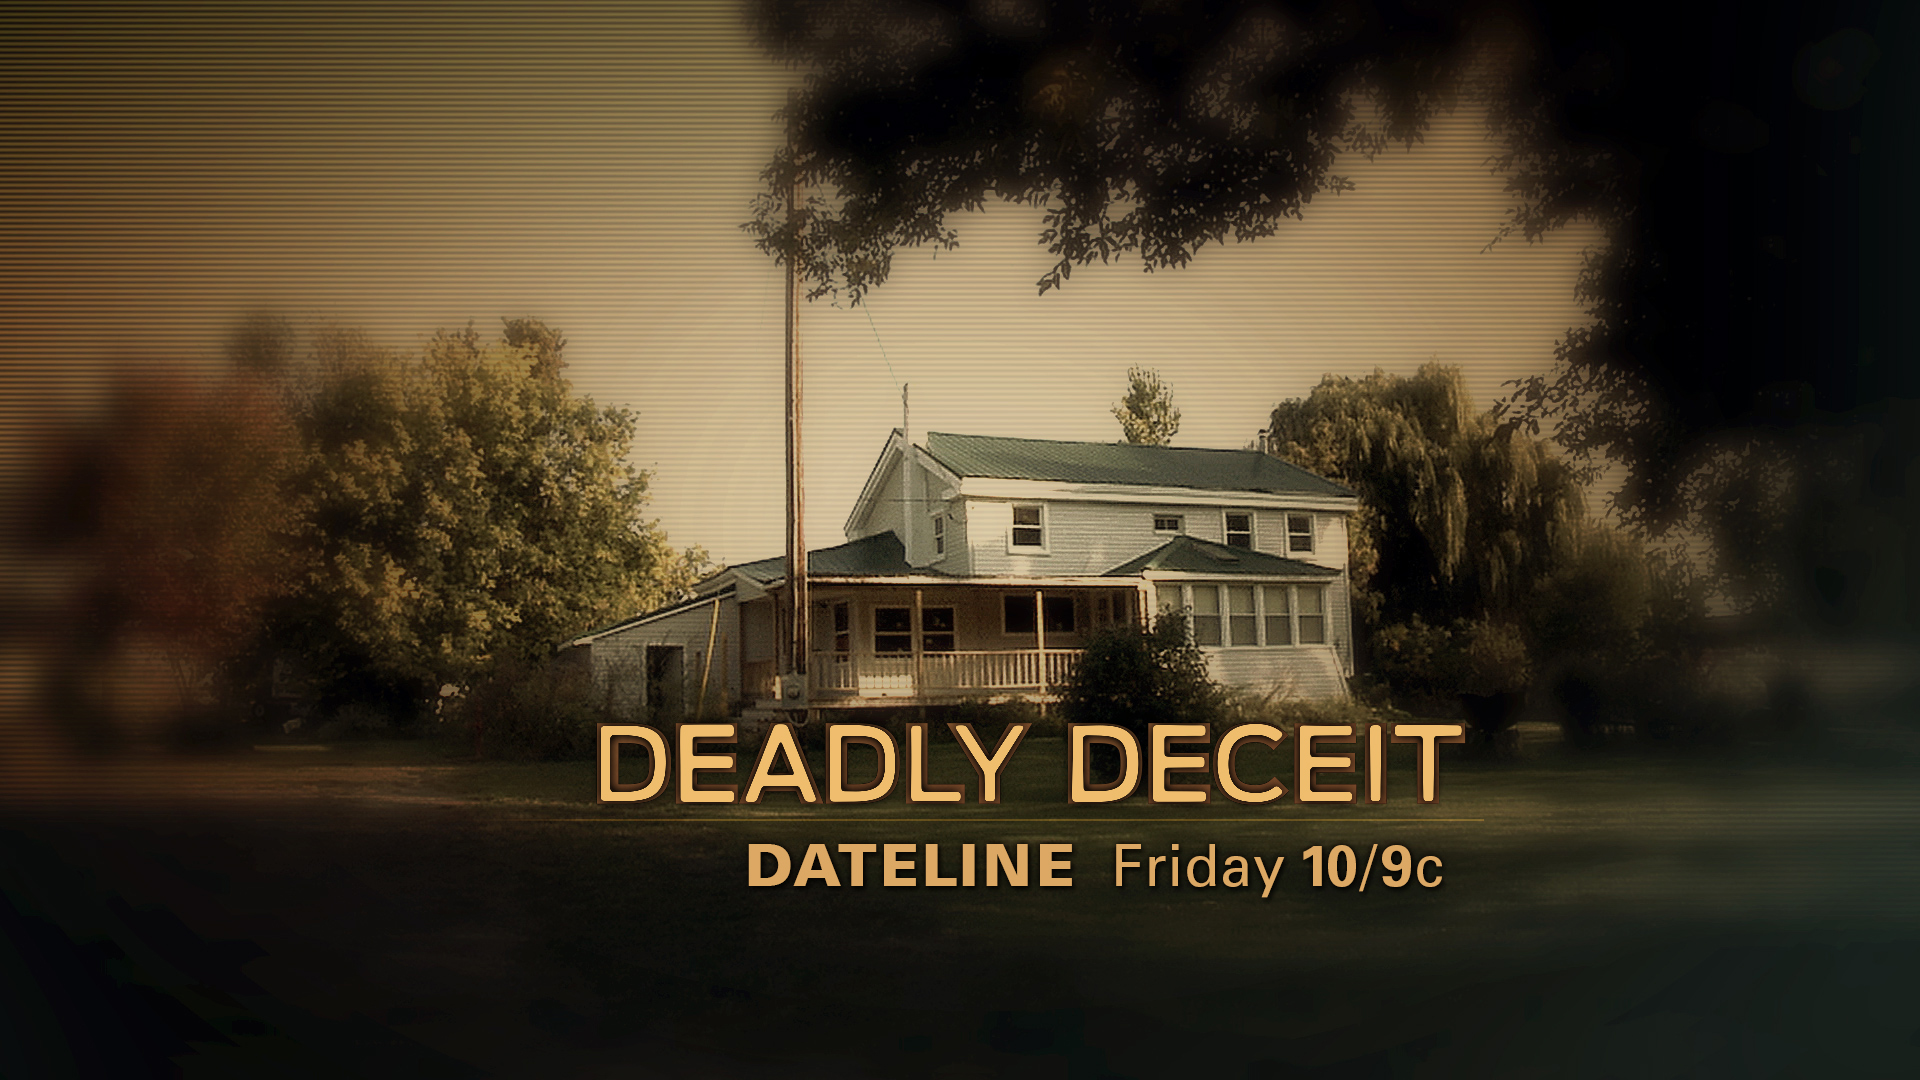 PREVIEW: Deadly Deceit - NBC News